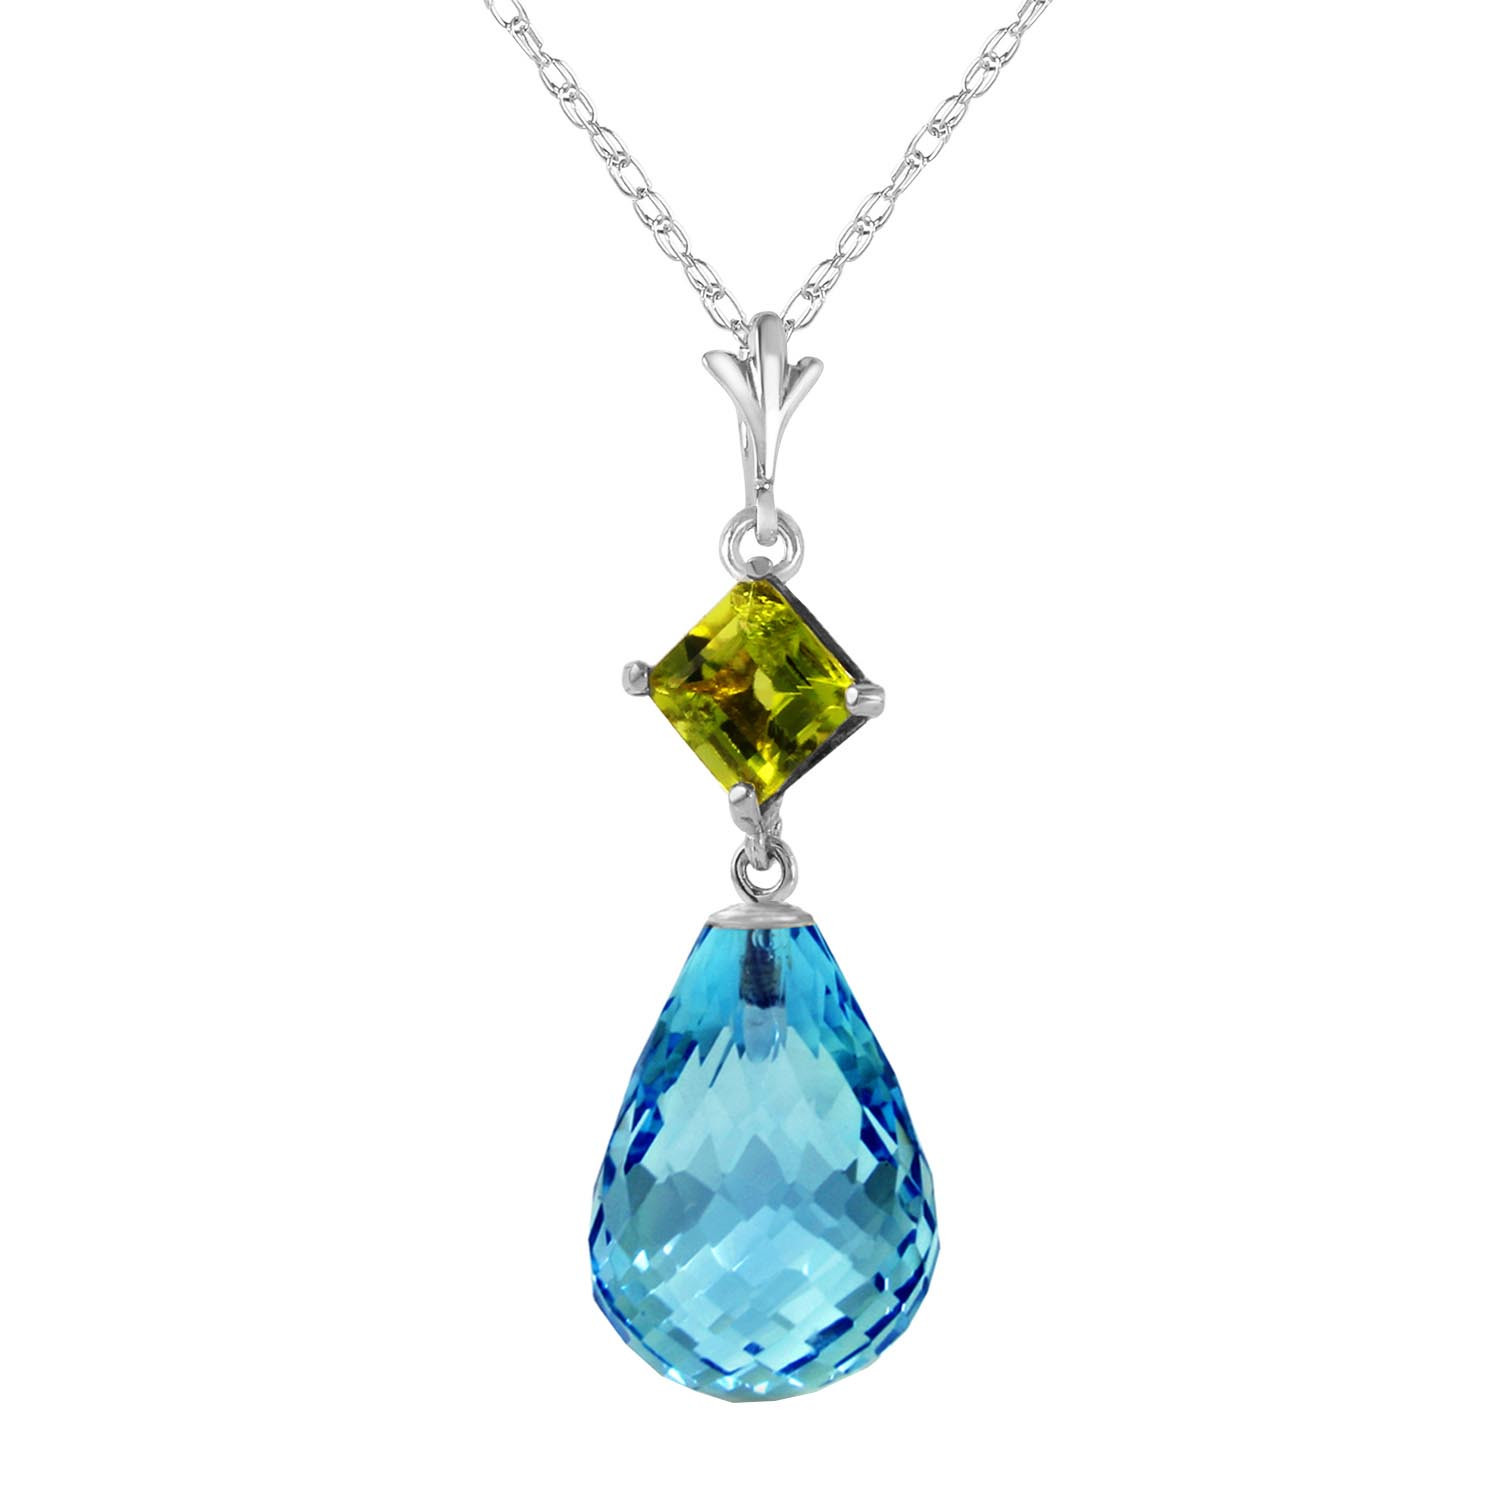 Blue Topaz & Peridot Pendant Necklace in 9ct White Gold